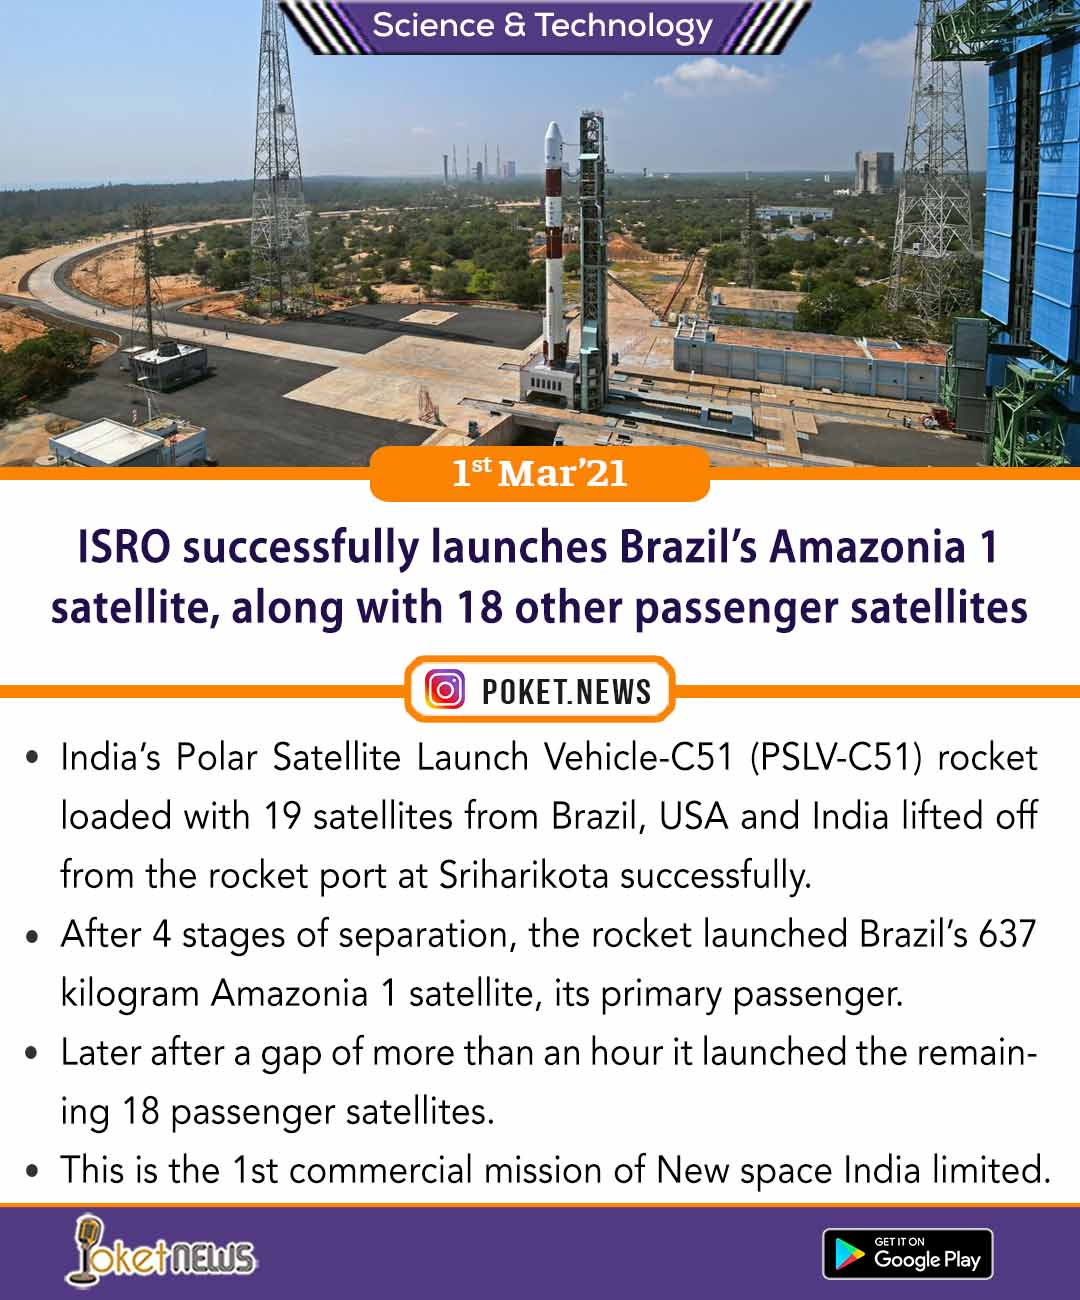 ISRO successfully launches Brazil's Amazonia 1 satellite, along with 18 other passenger satellites